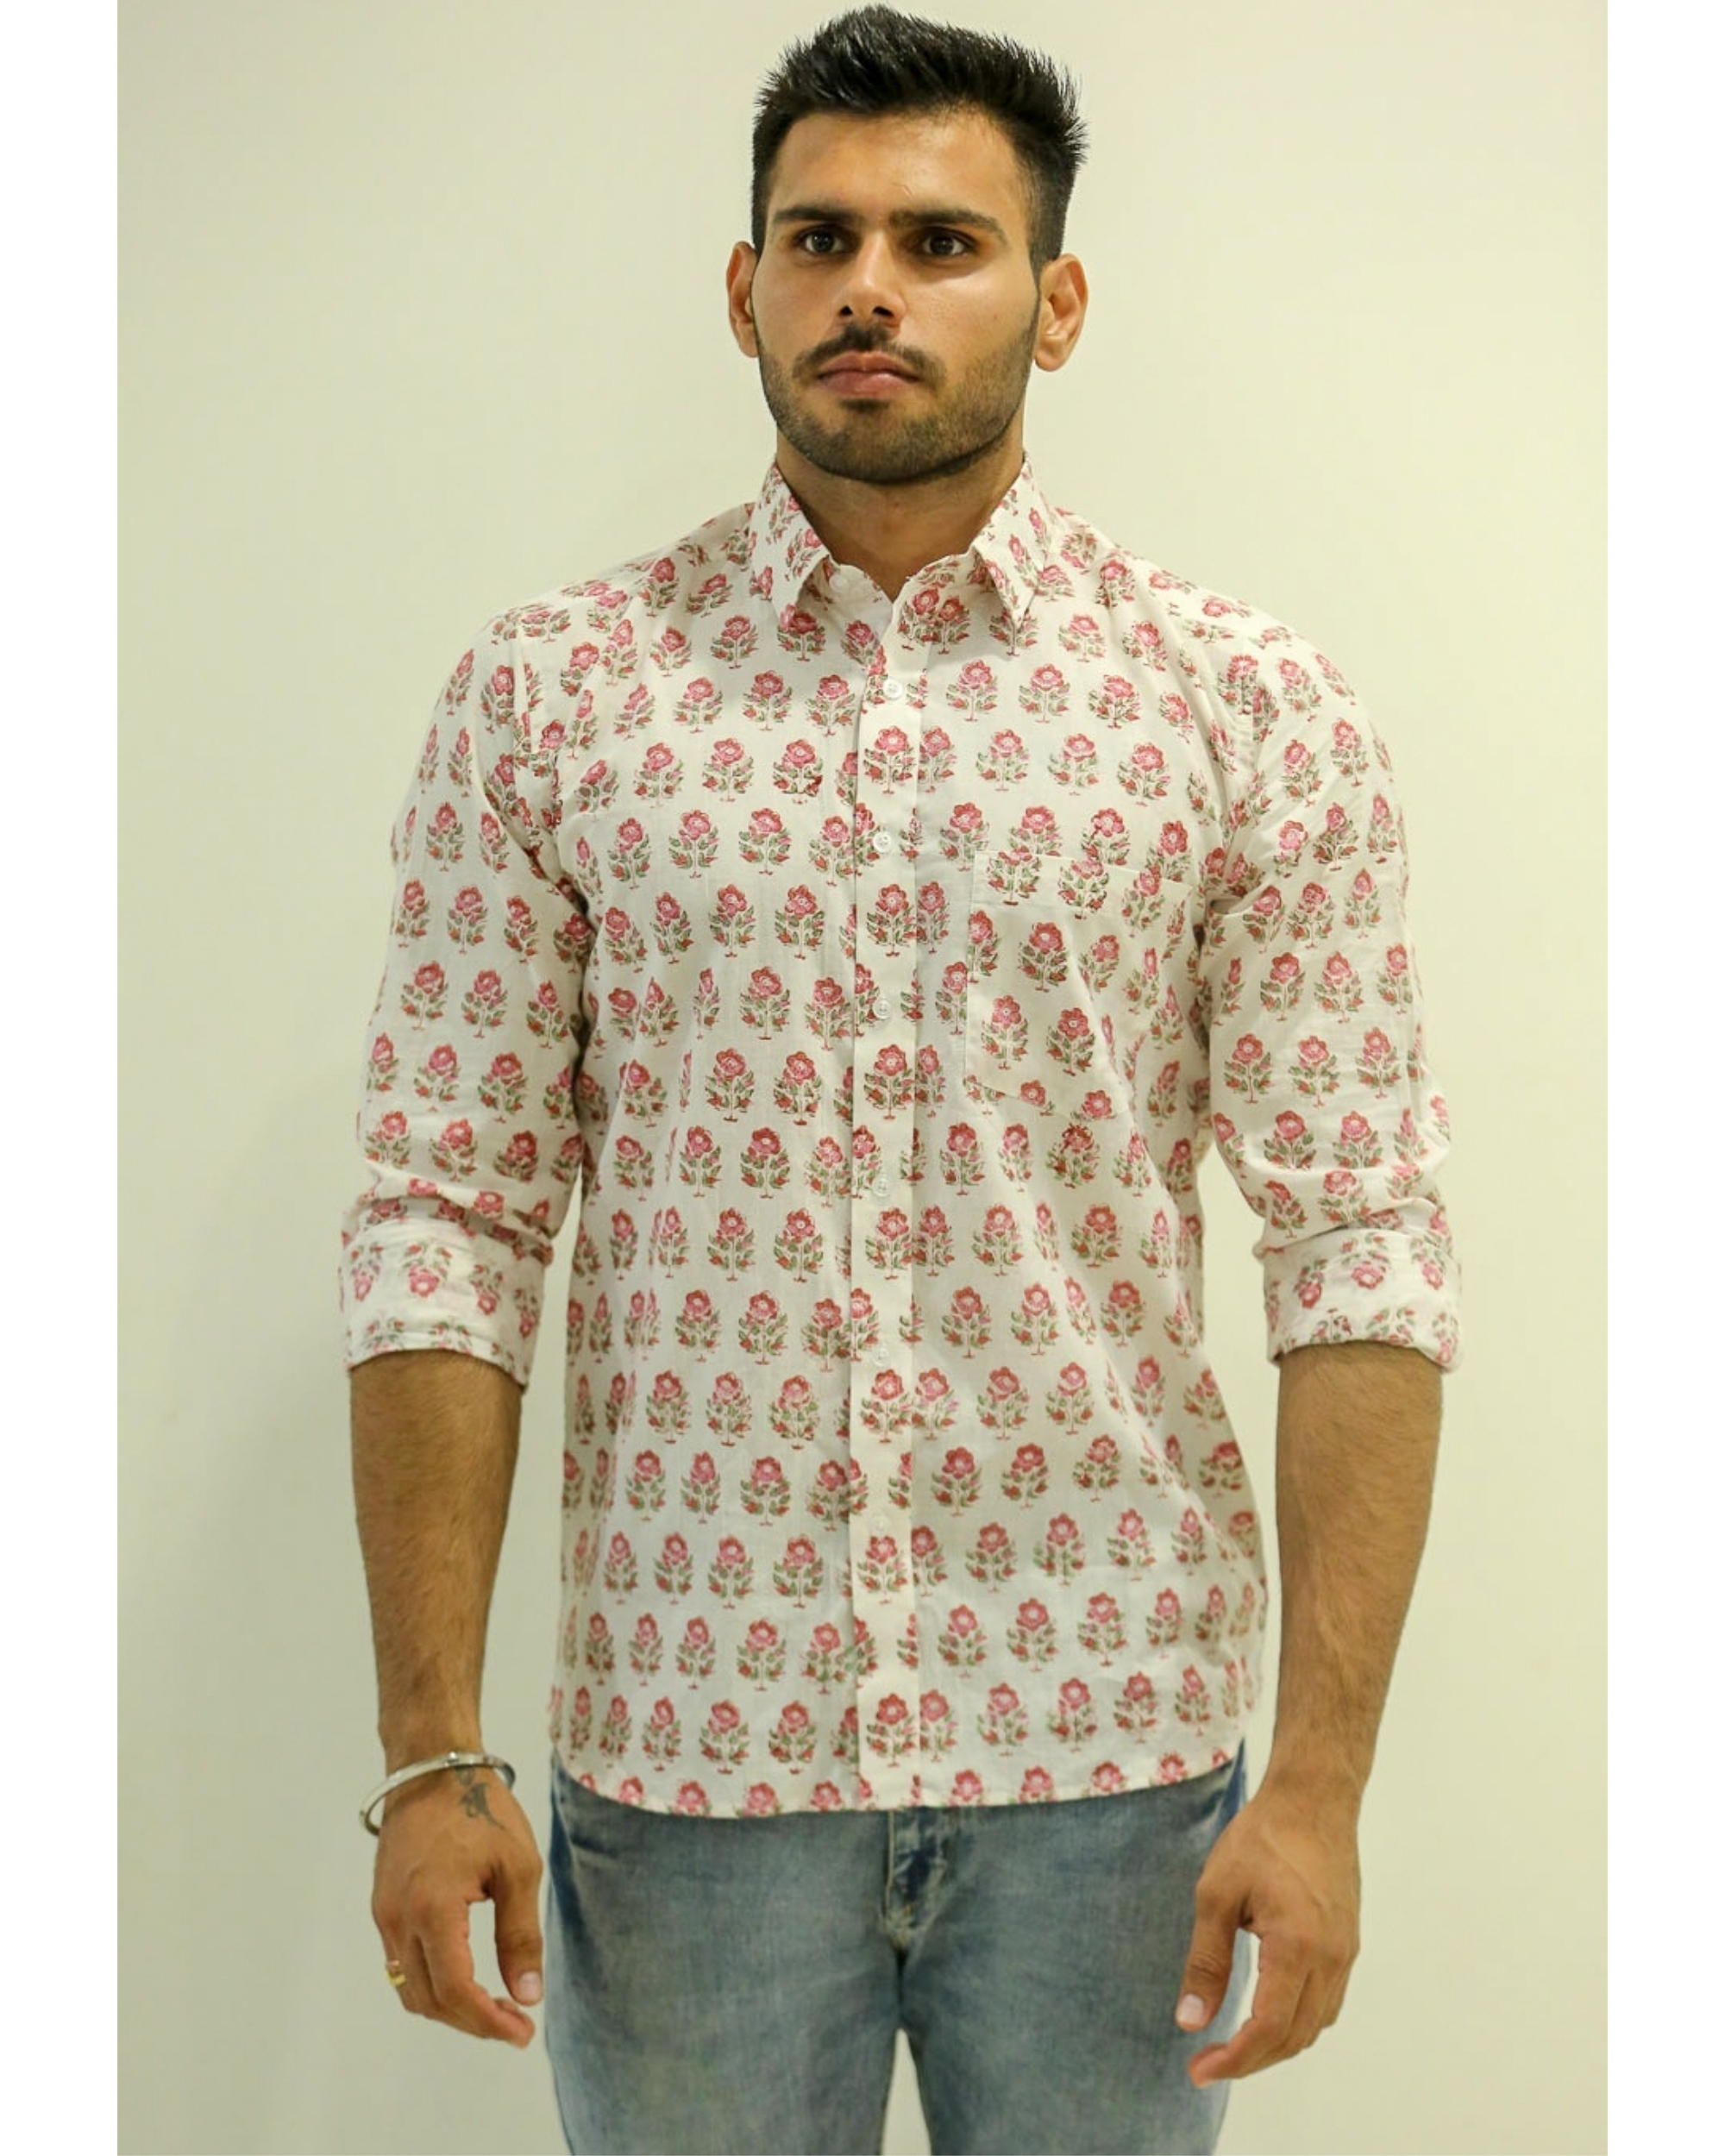 White and Pink Floral Printed Shirt